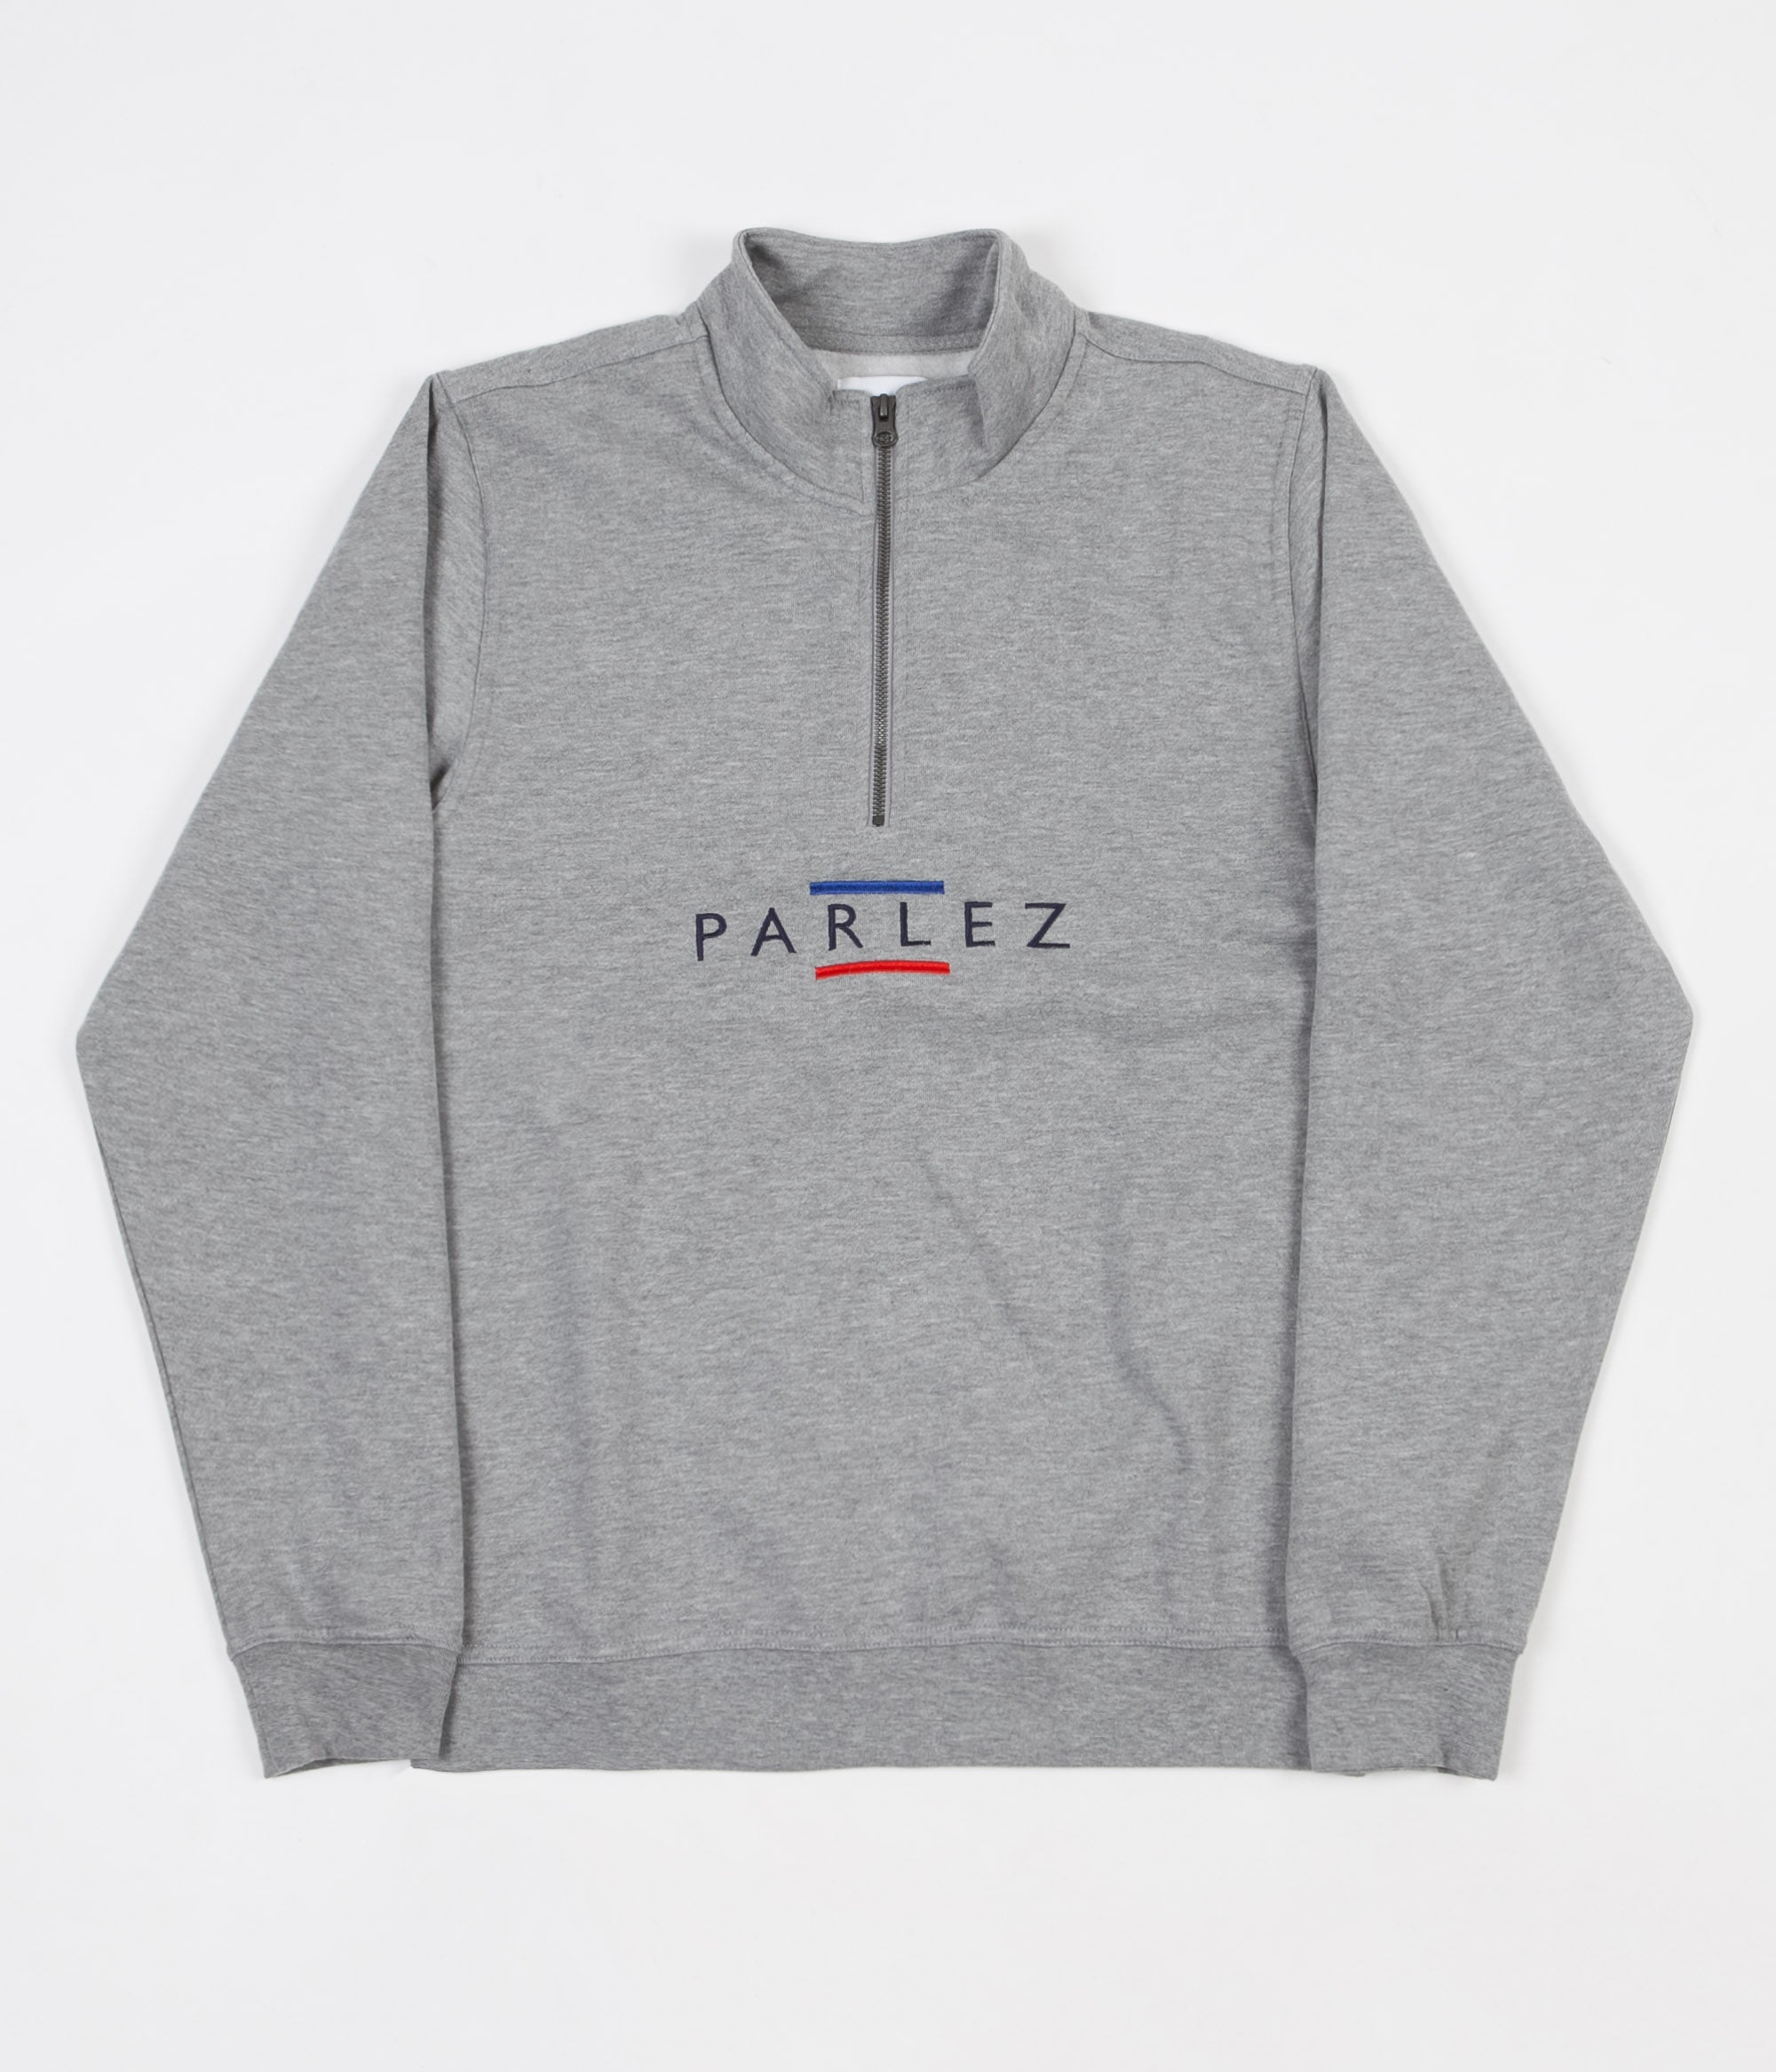 Parlez Line Quarter Zip Sweatshirt - Heather